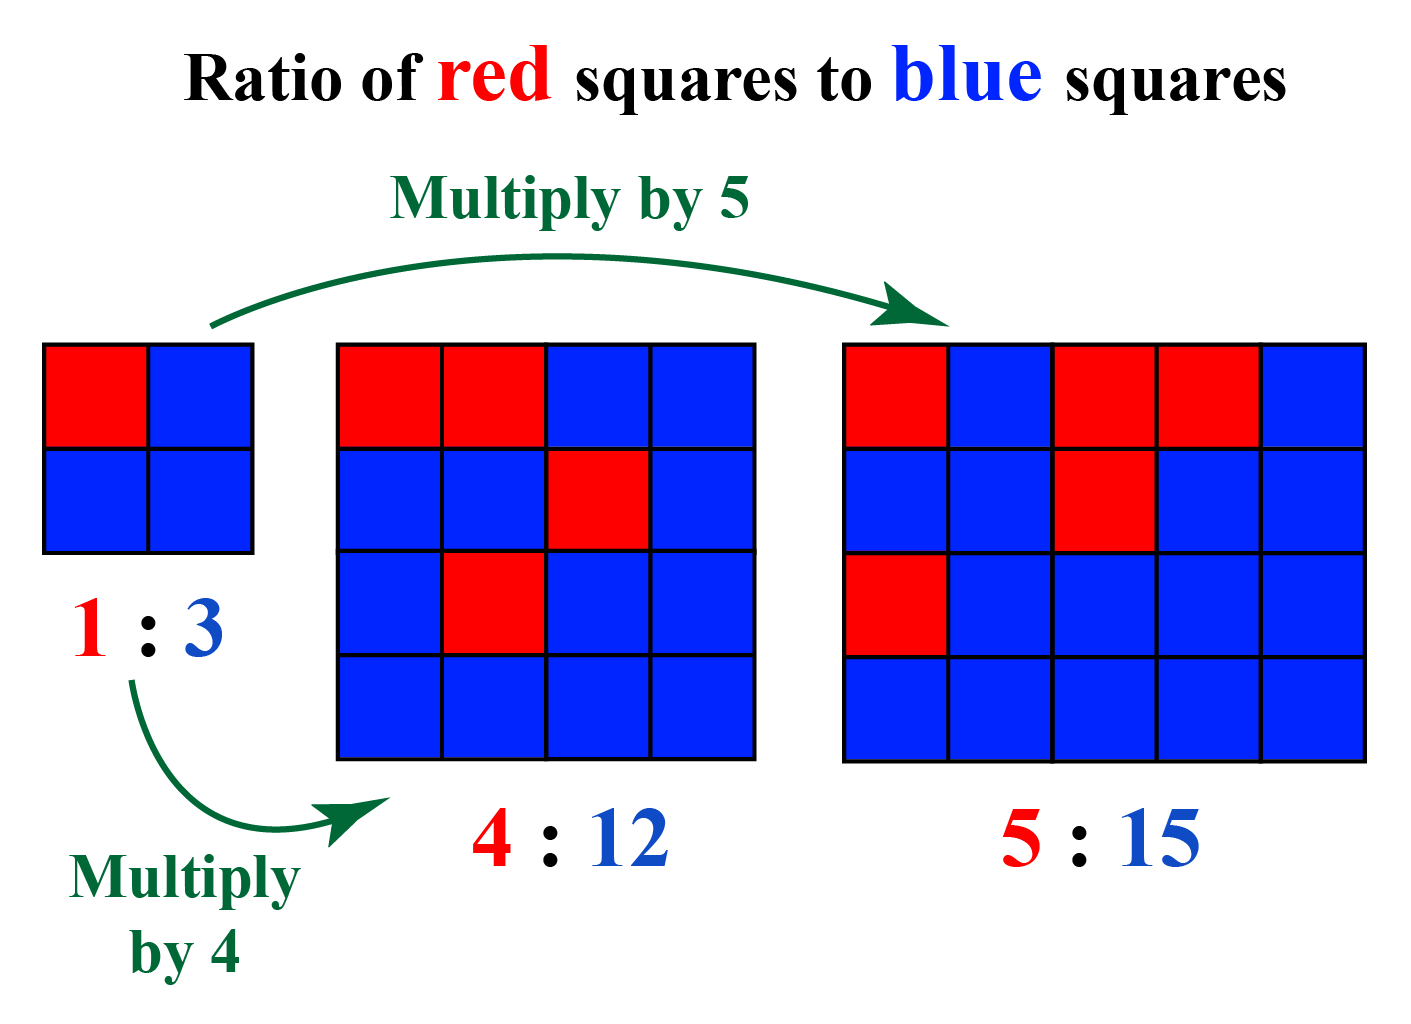 equivalent ratio - ratio of red squares to blue squares is 1:3